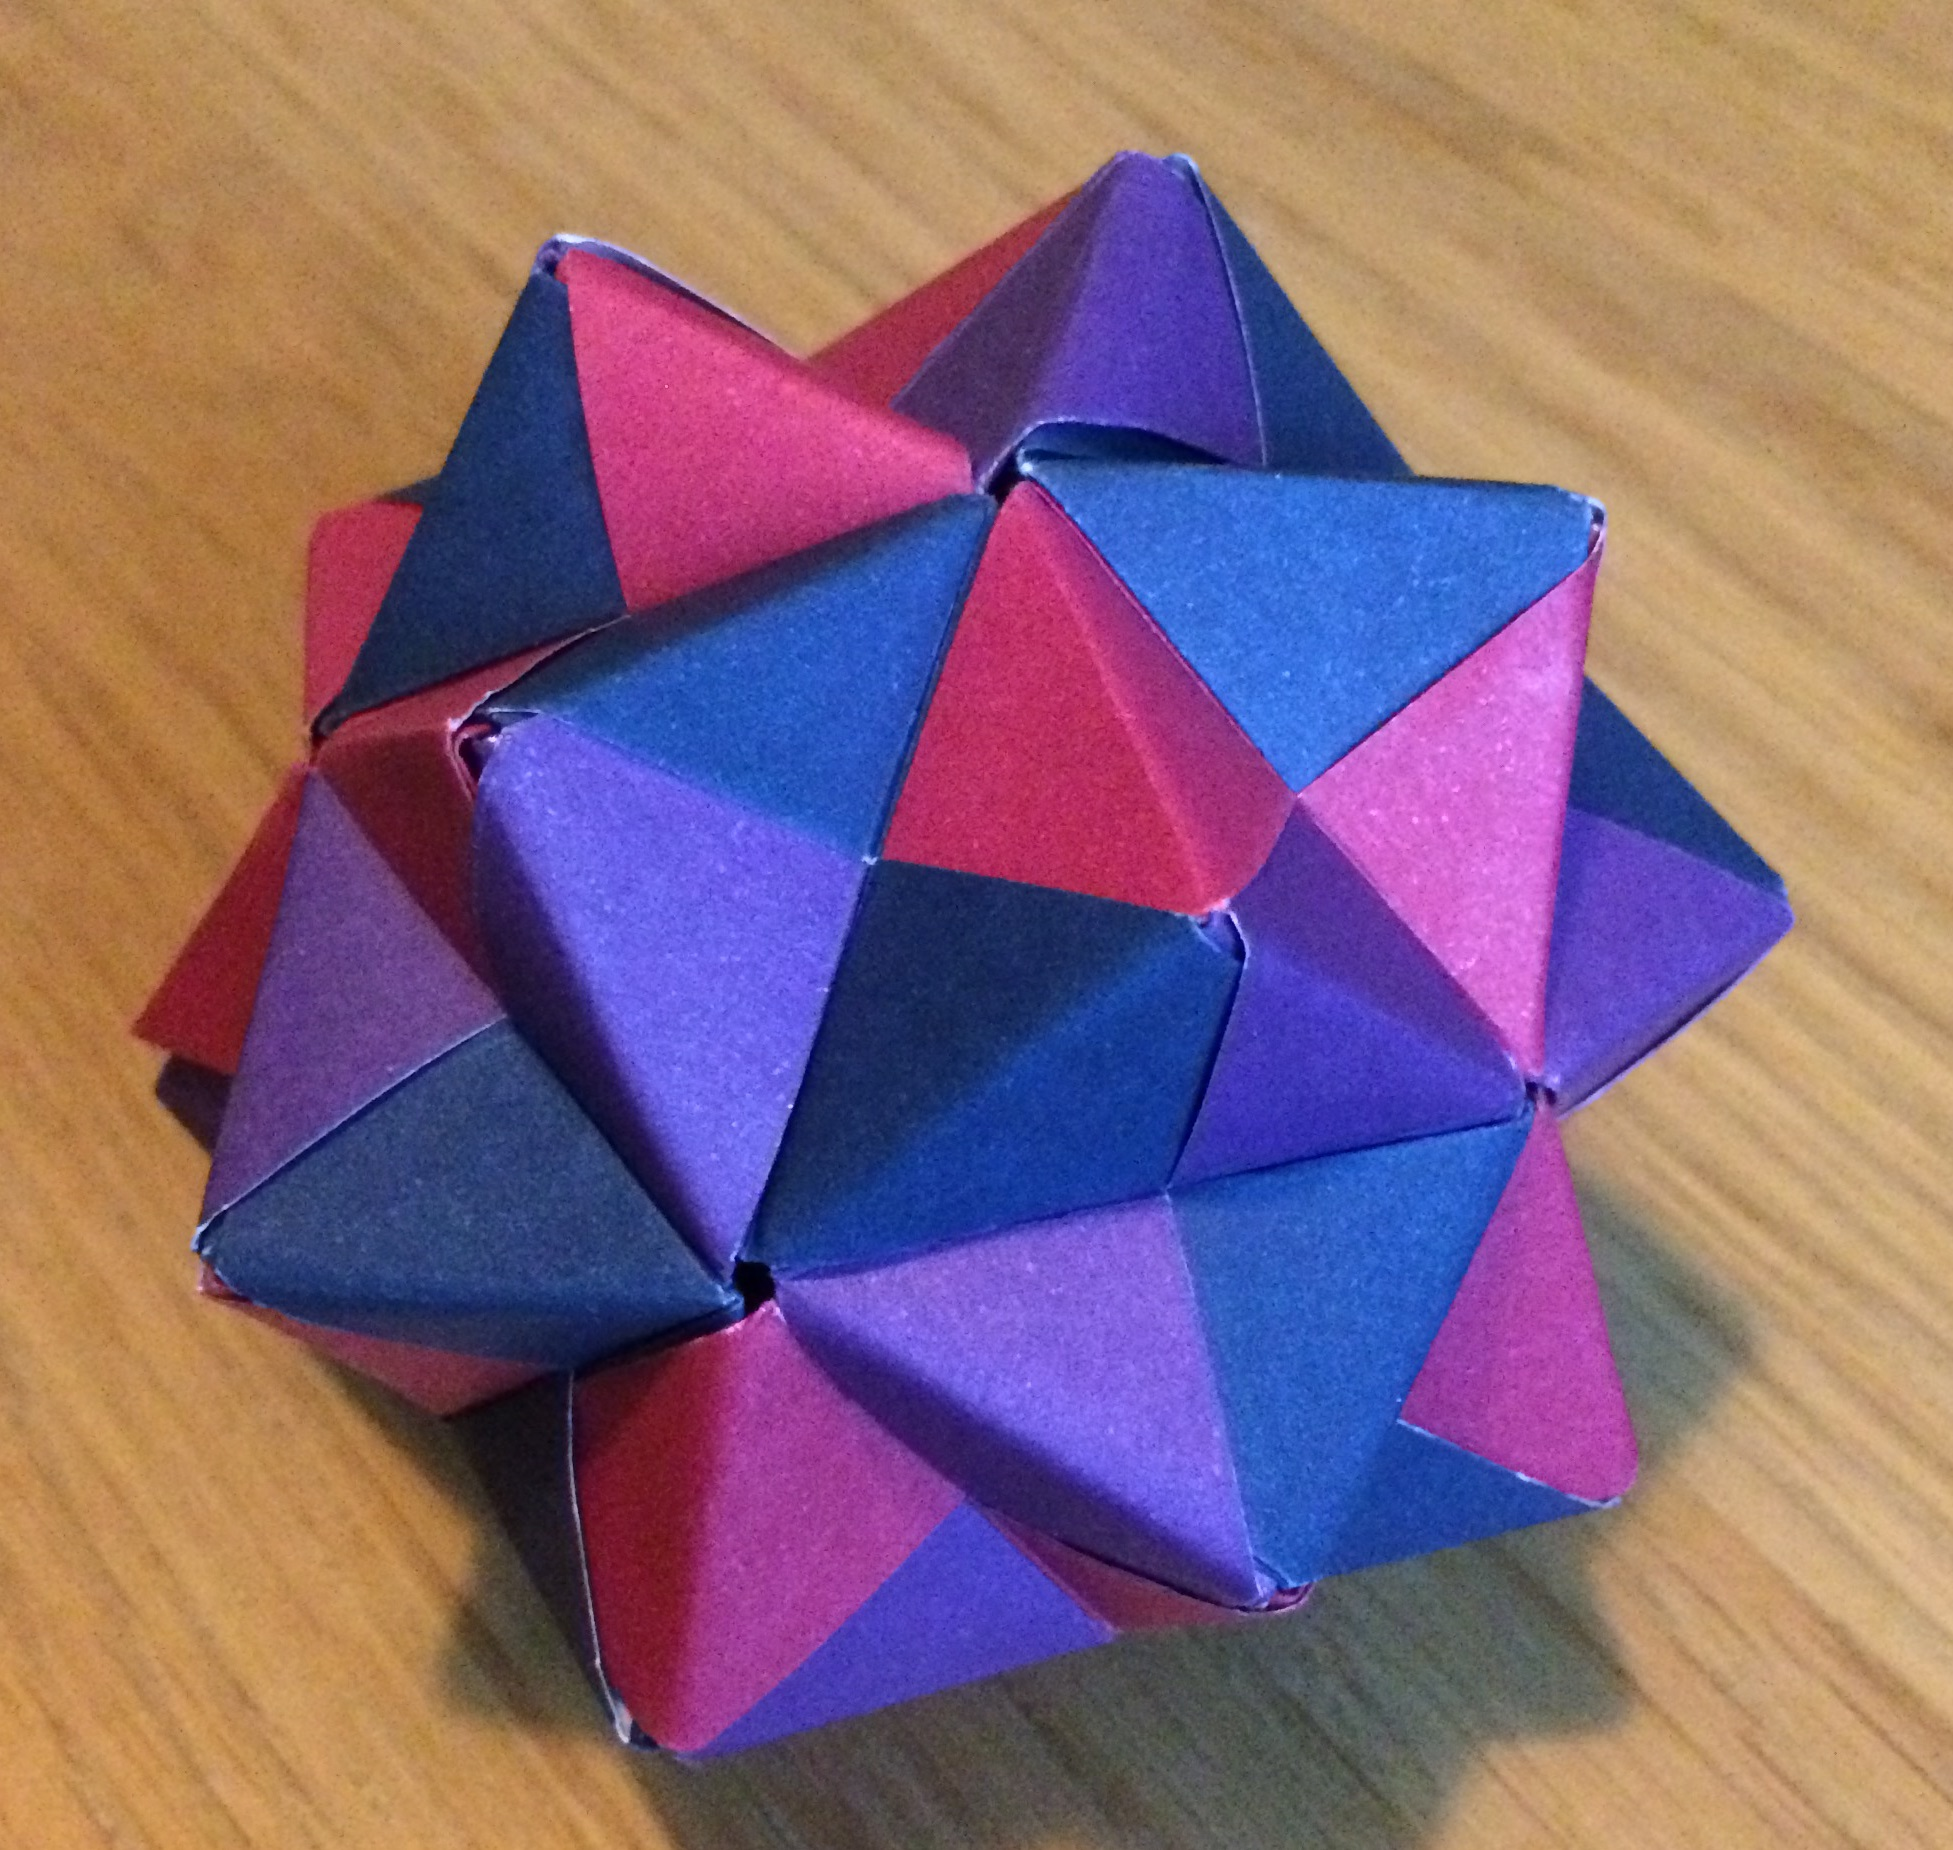 Modular origami polypompholyx cumulated icosahedron sonobe cc by sa 30 steve cook jeuxipadfo Gallery